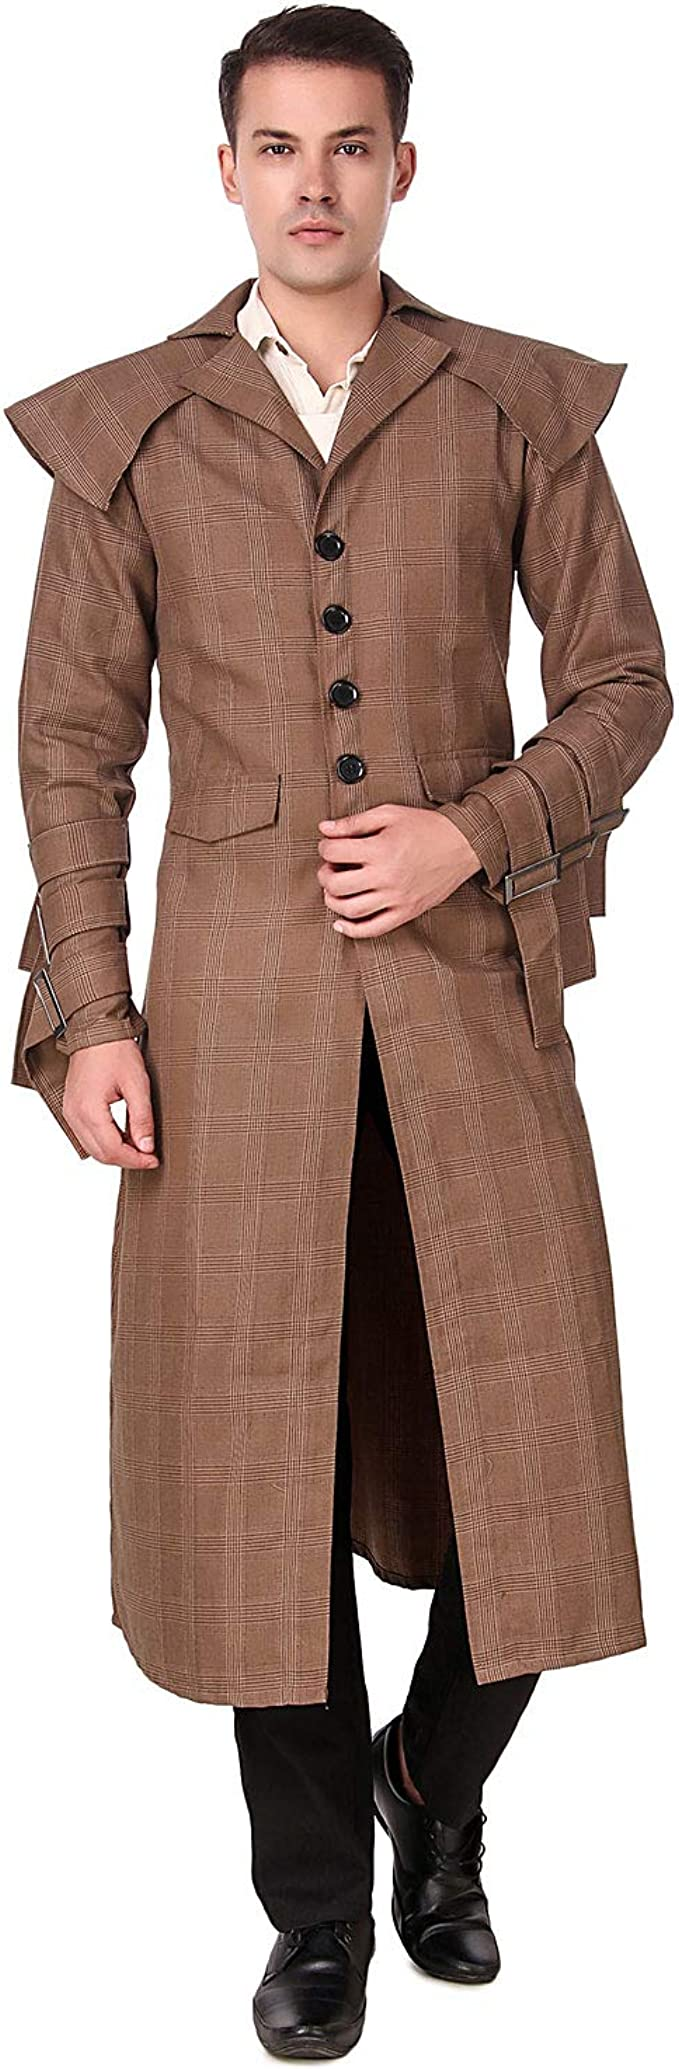 Men's Steampunk Jackets, Coats & Suits ThePirateDressing Steampunk Victorian Pirate Gothic Cosplay Mens Costume Coat Jacket $119.99 AT vintagedancer.com